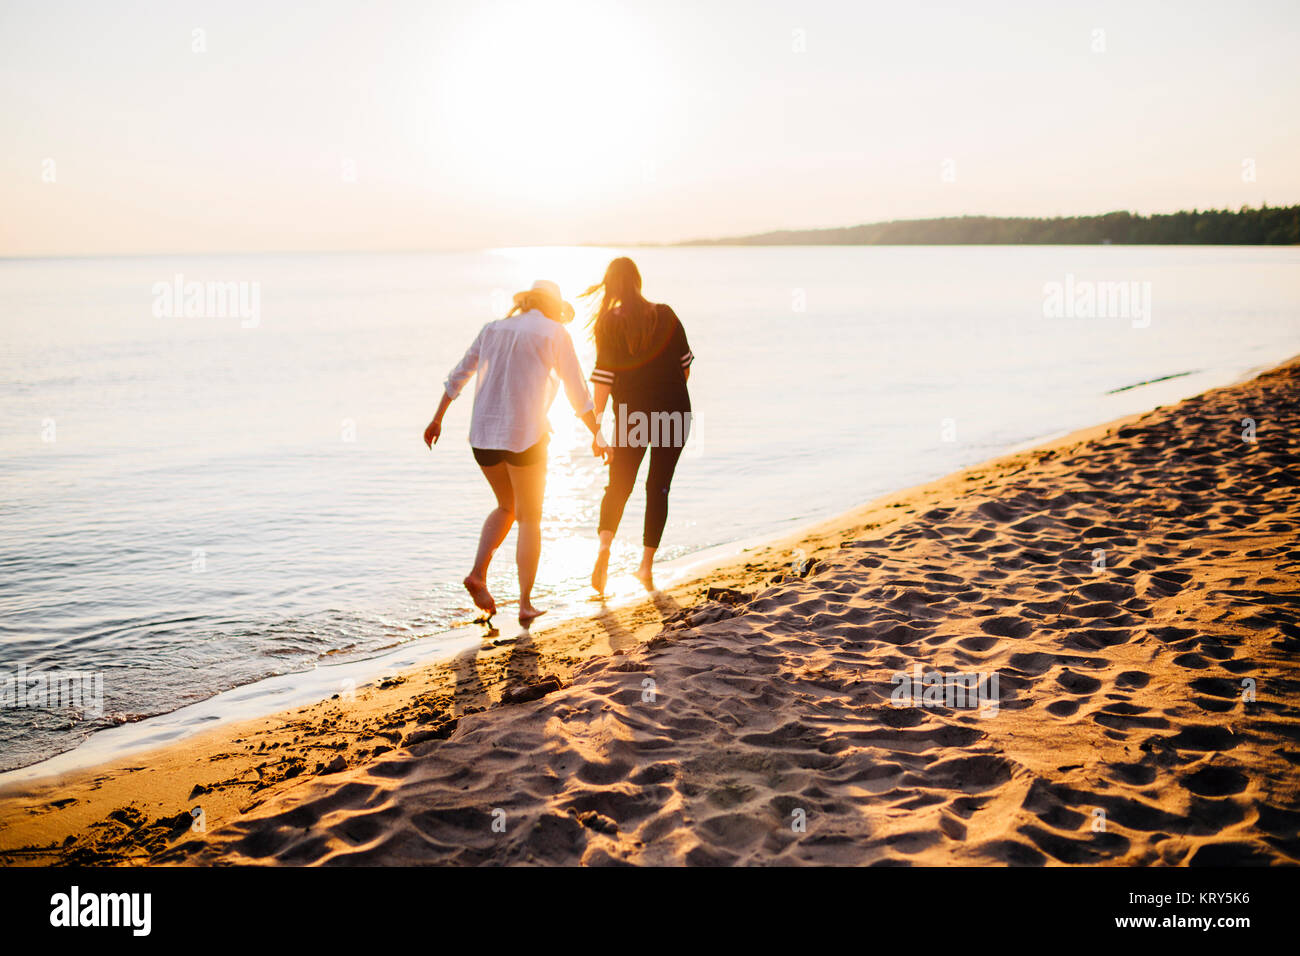 Two women on the beach - Stock Image